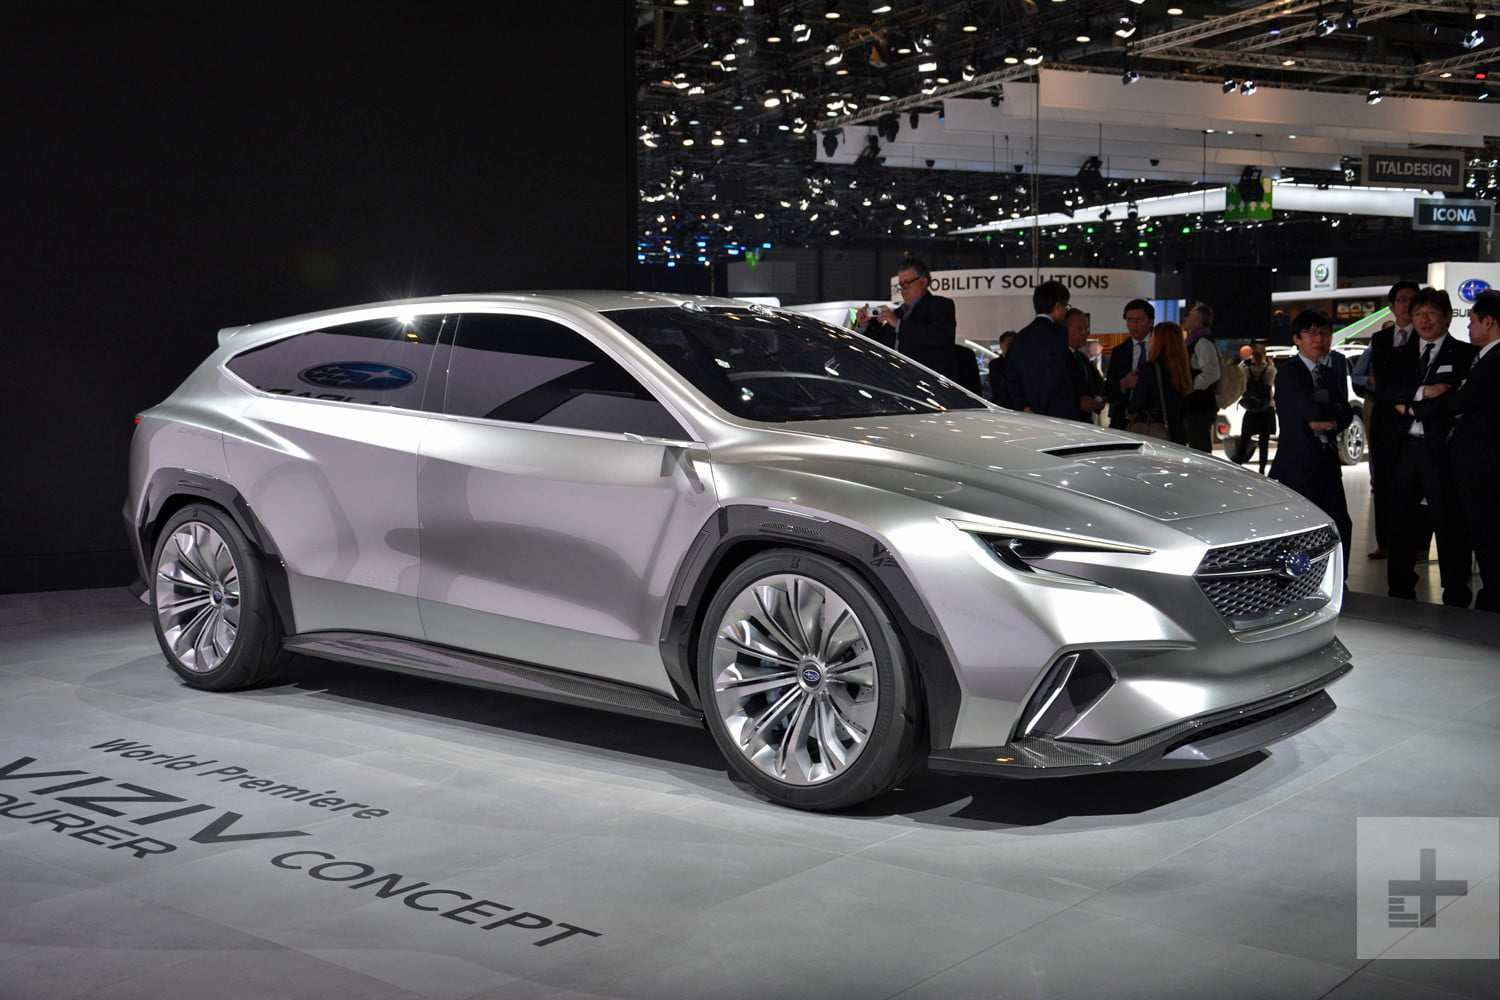 76 Best Review Subaru Plans For 2019 Concept Redesign And Review Pricing for Subaru Plans For 2019 Concept Redesign And Review